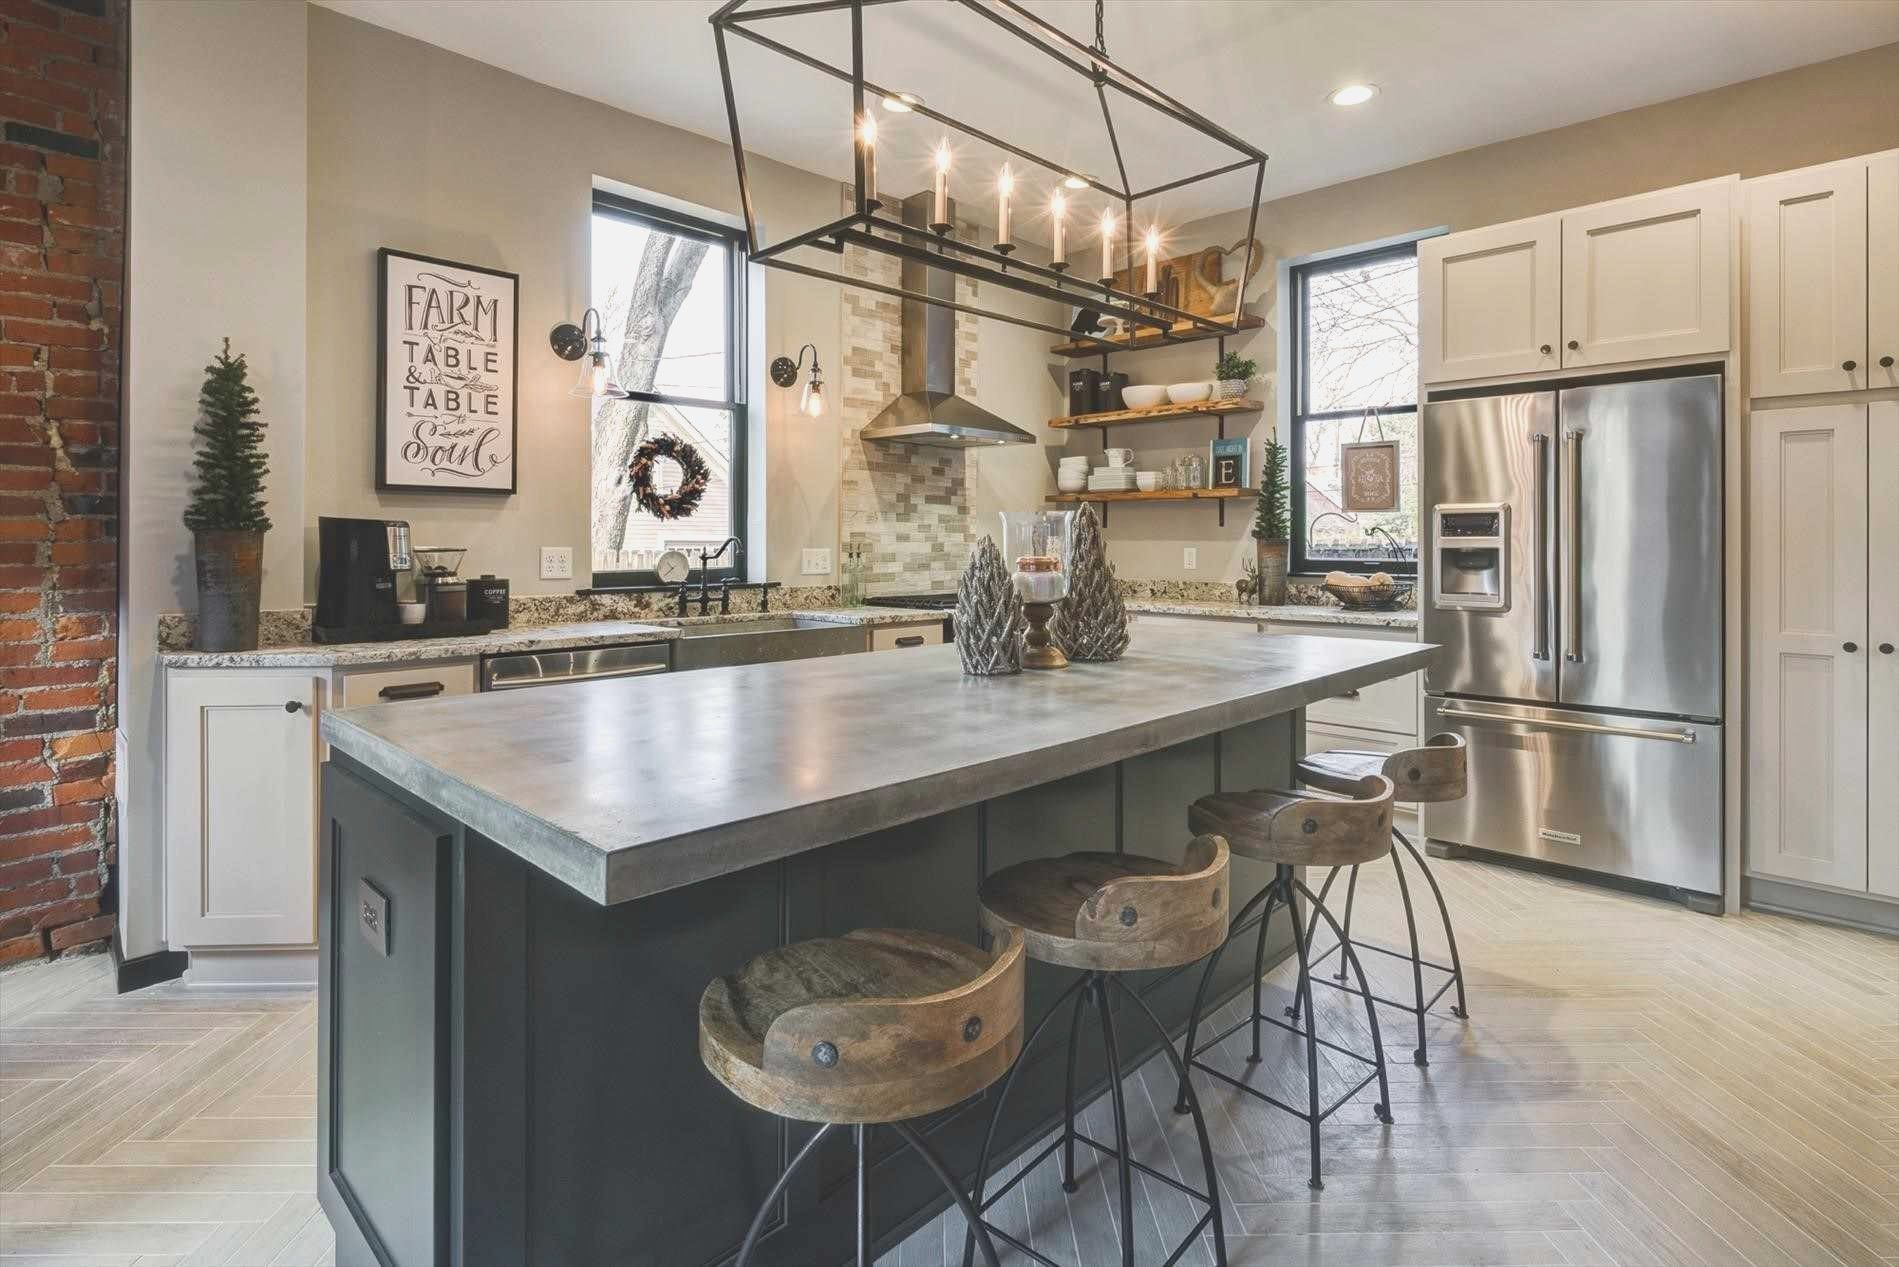 Kitchen Island With Butcher Block   Black Kitchen Island With Butcher Block  Top, Blue Kitchen Island With Butcher Block, Butcher Block Kitchen Island  With ...